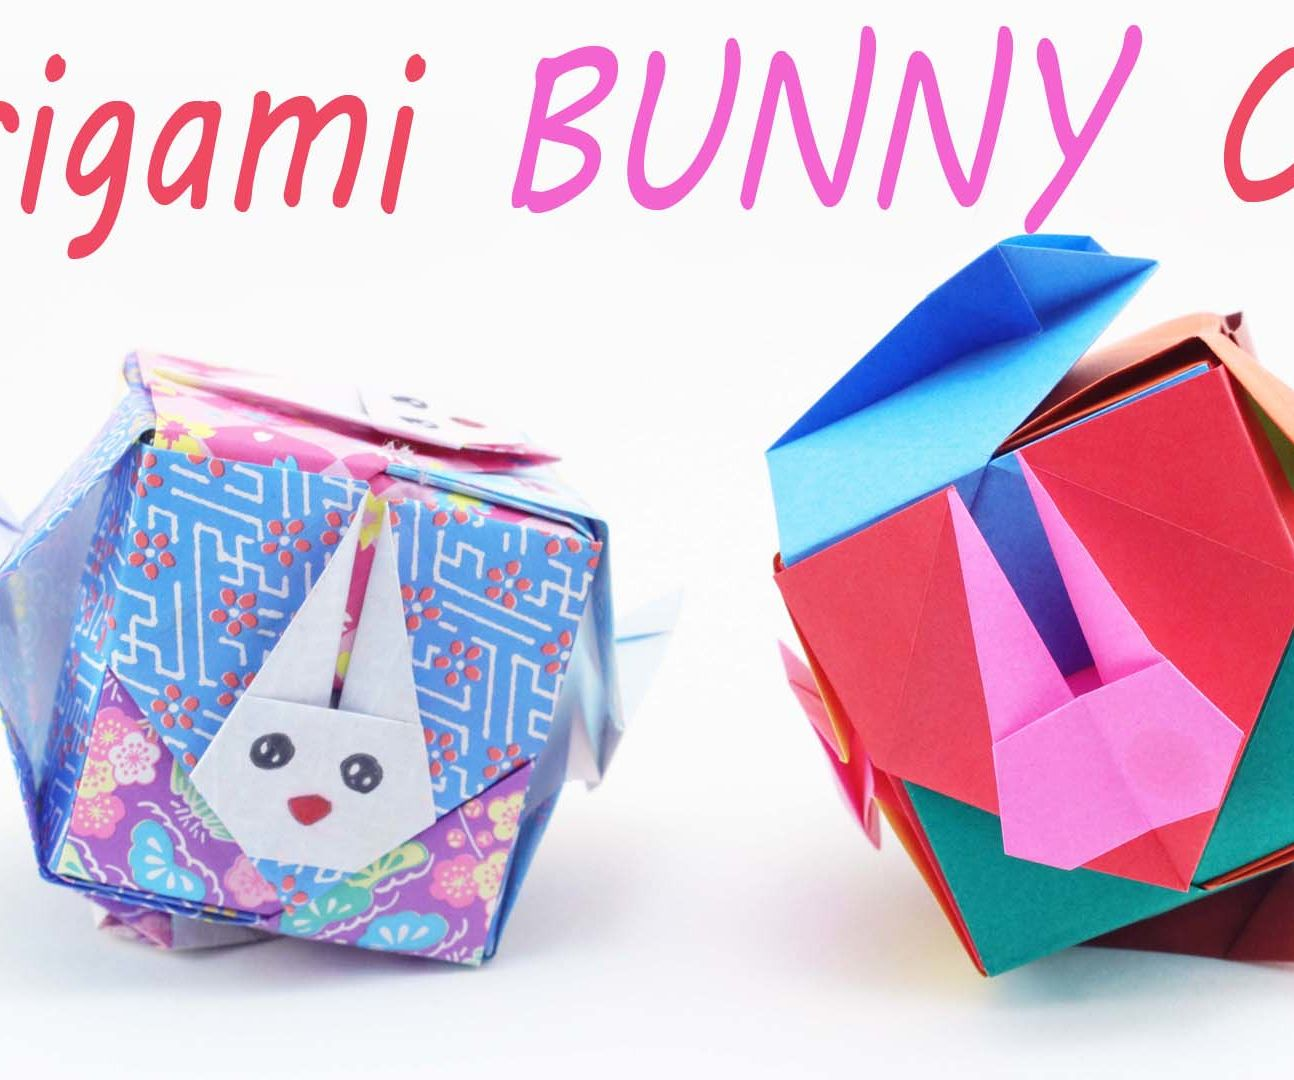 Origami Bunny Cube ✿ DIY Crafts Tutorial ✿ - SunderOrigami!